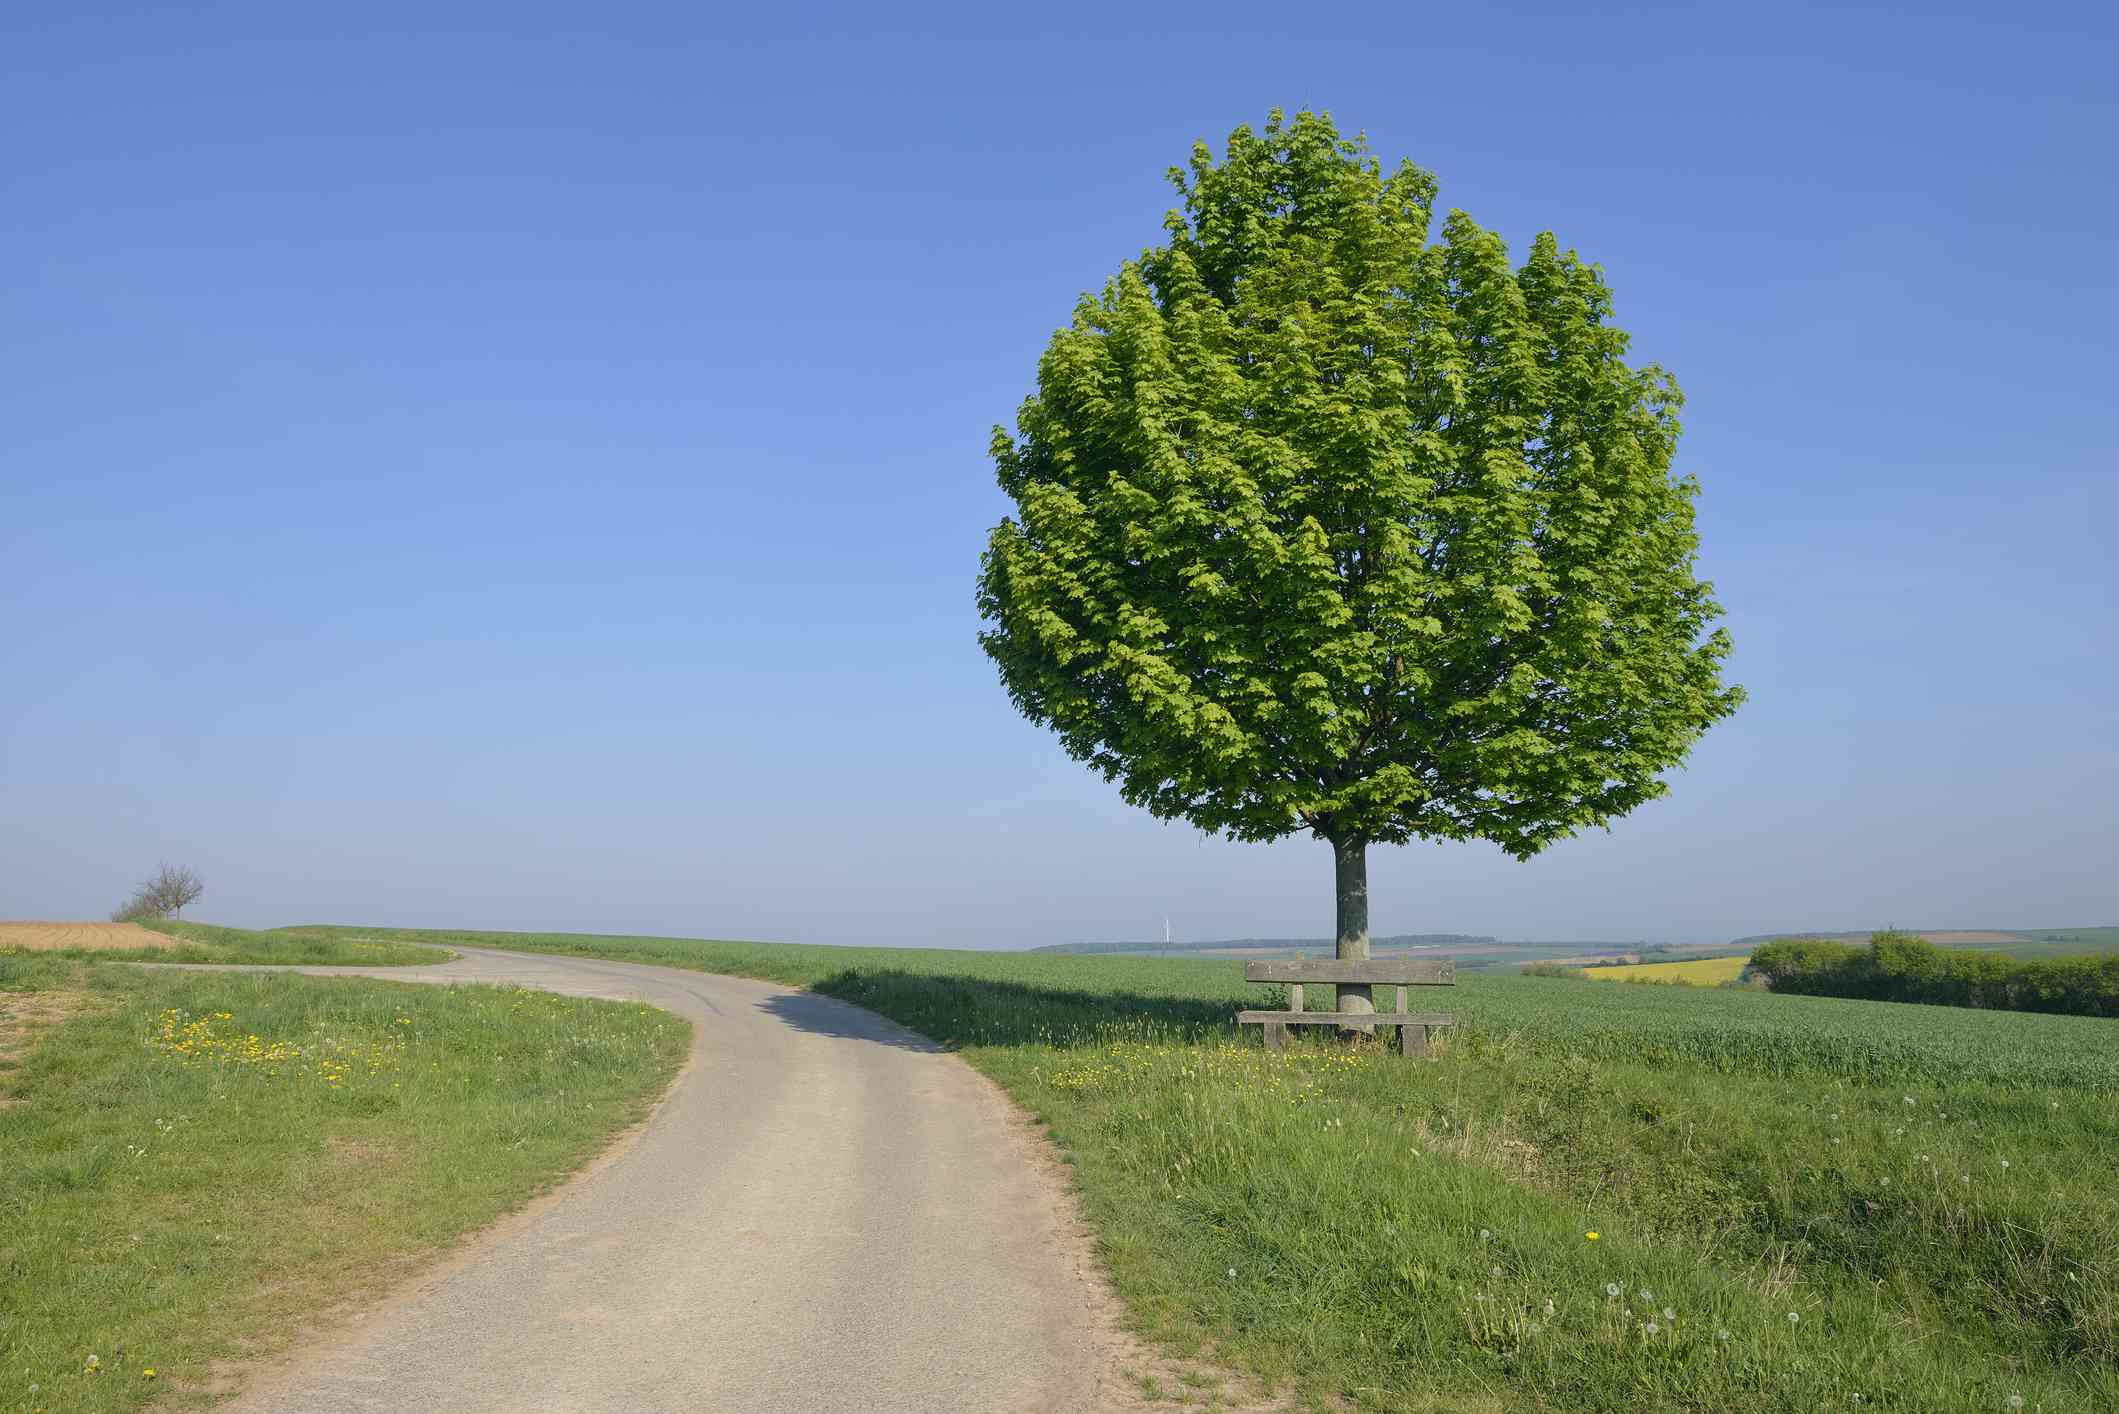 Rural road with solitude tree with bench (Acer platanoides / Norway maple).